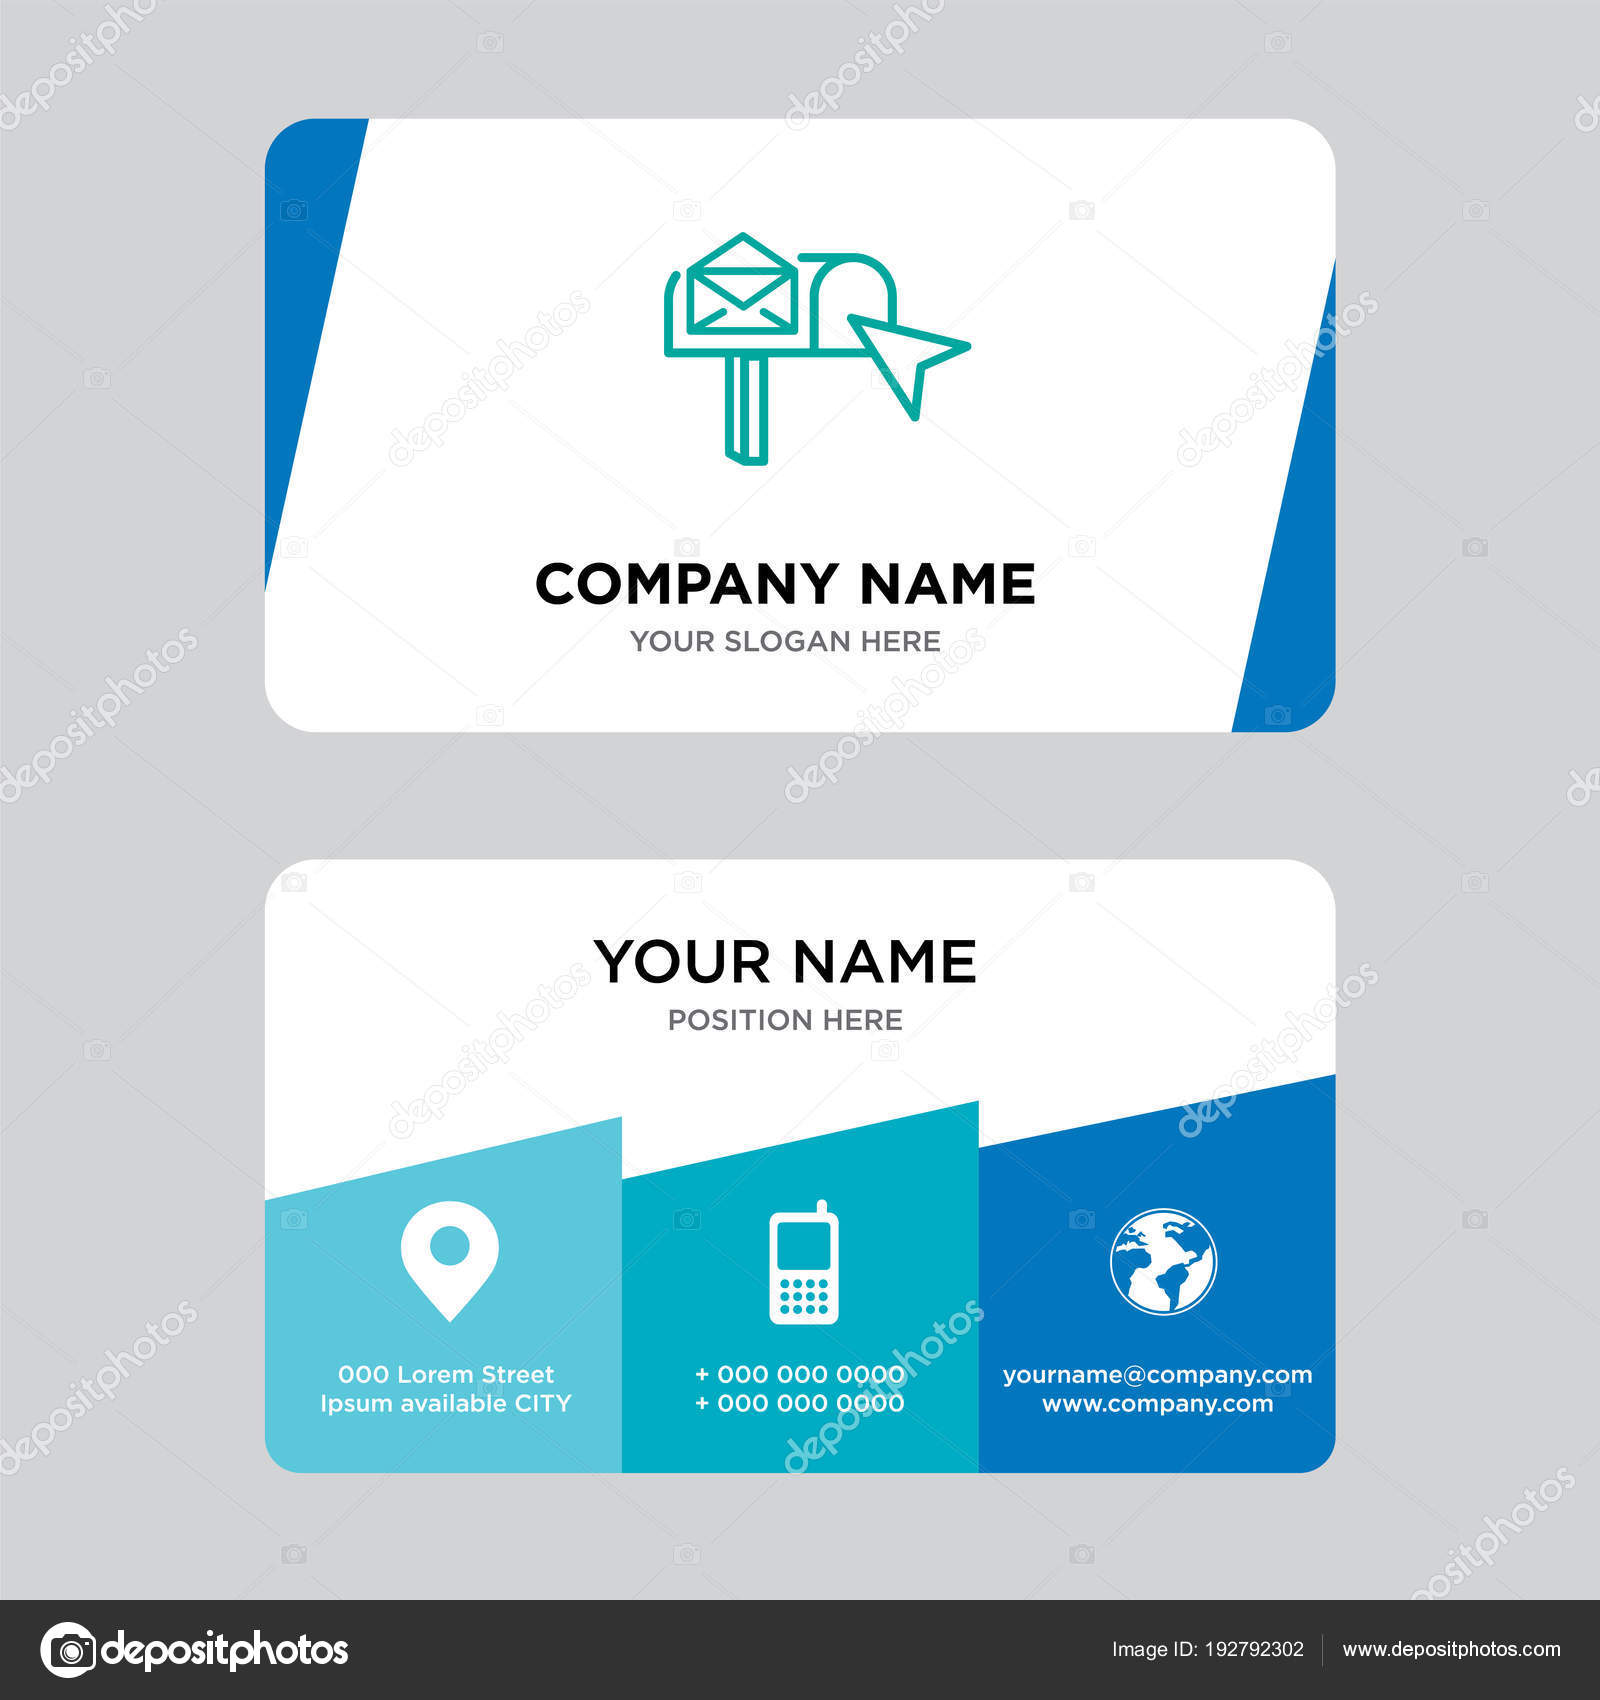 Email box business card design template stock vector email box business card design template visiting for your company modern creative and clean identity card vector illustration vector by provectorstock reheart Image collections